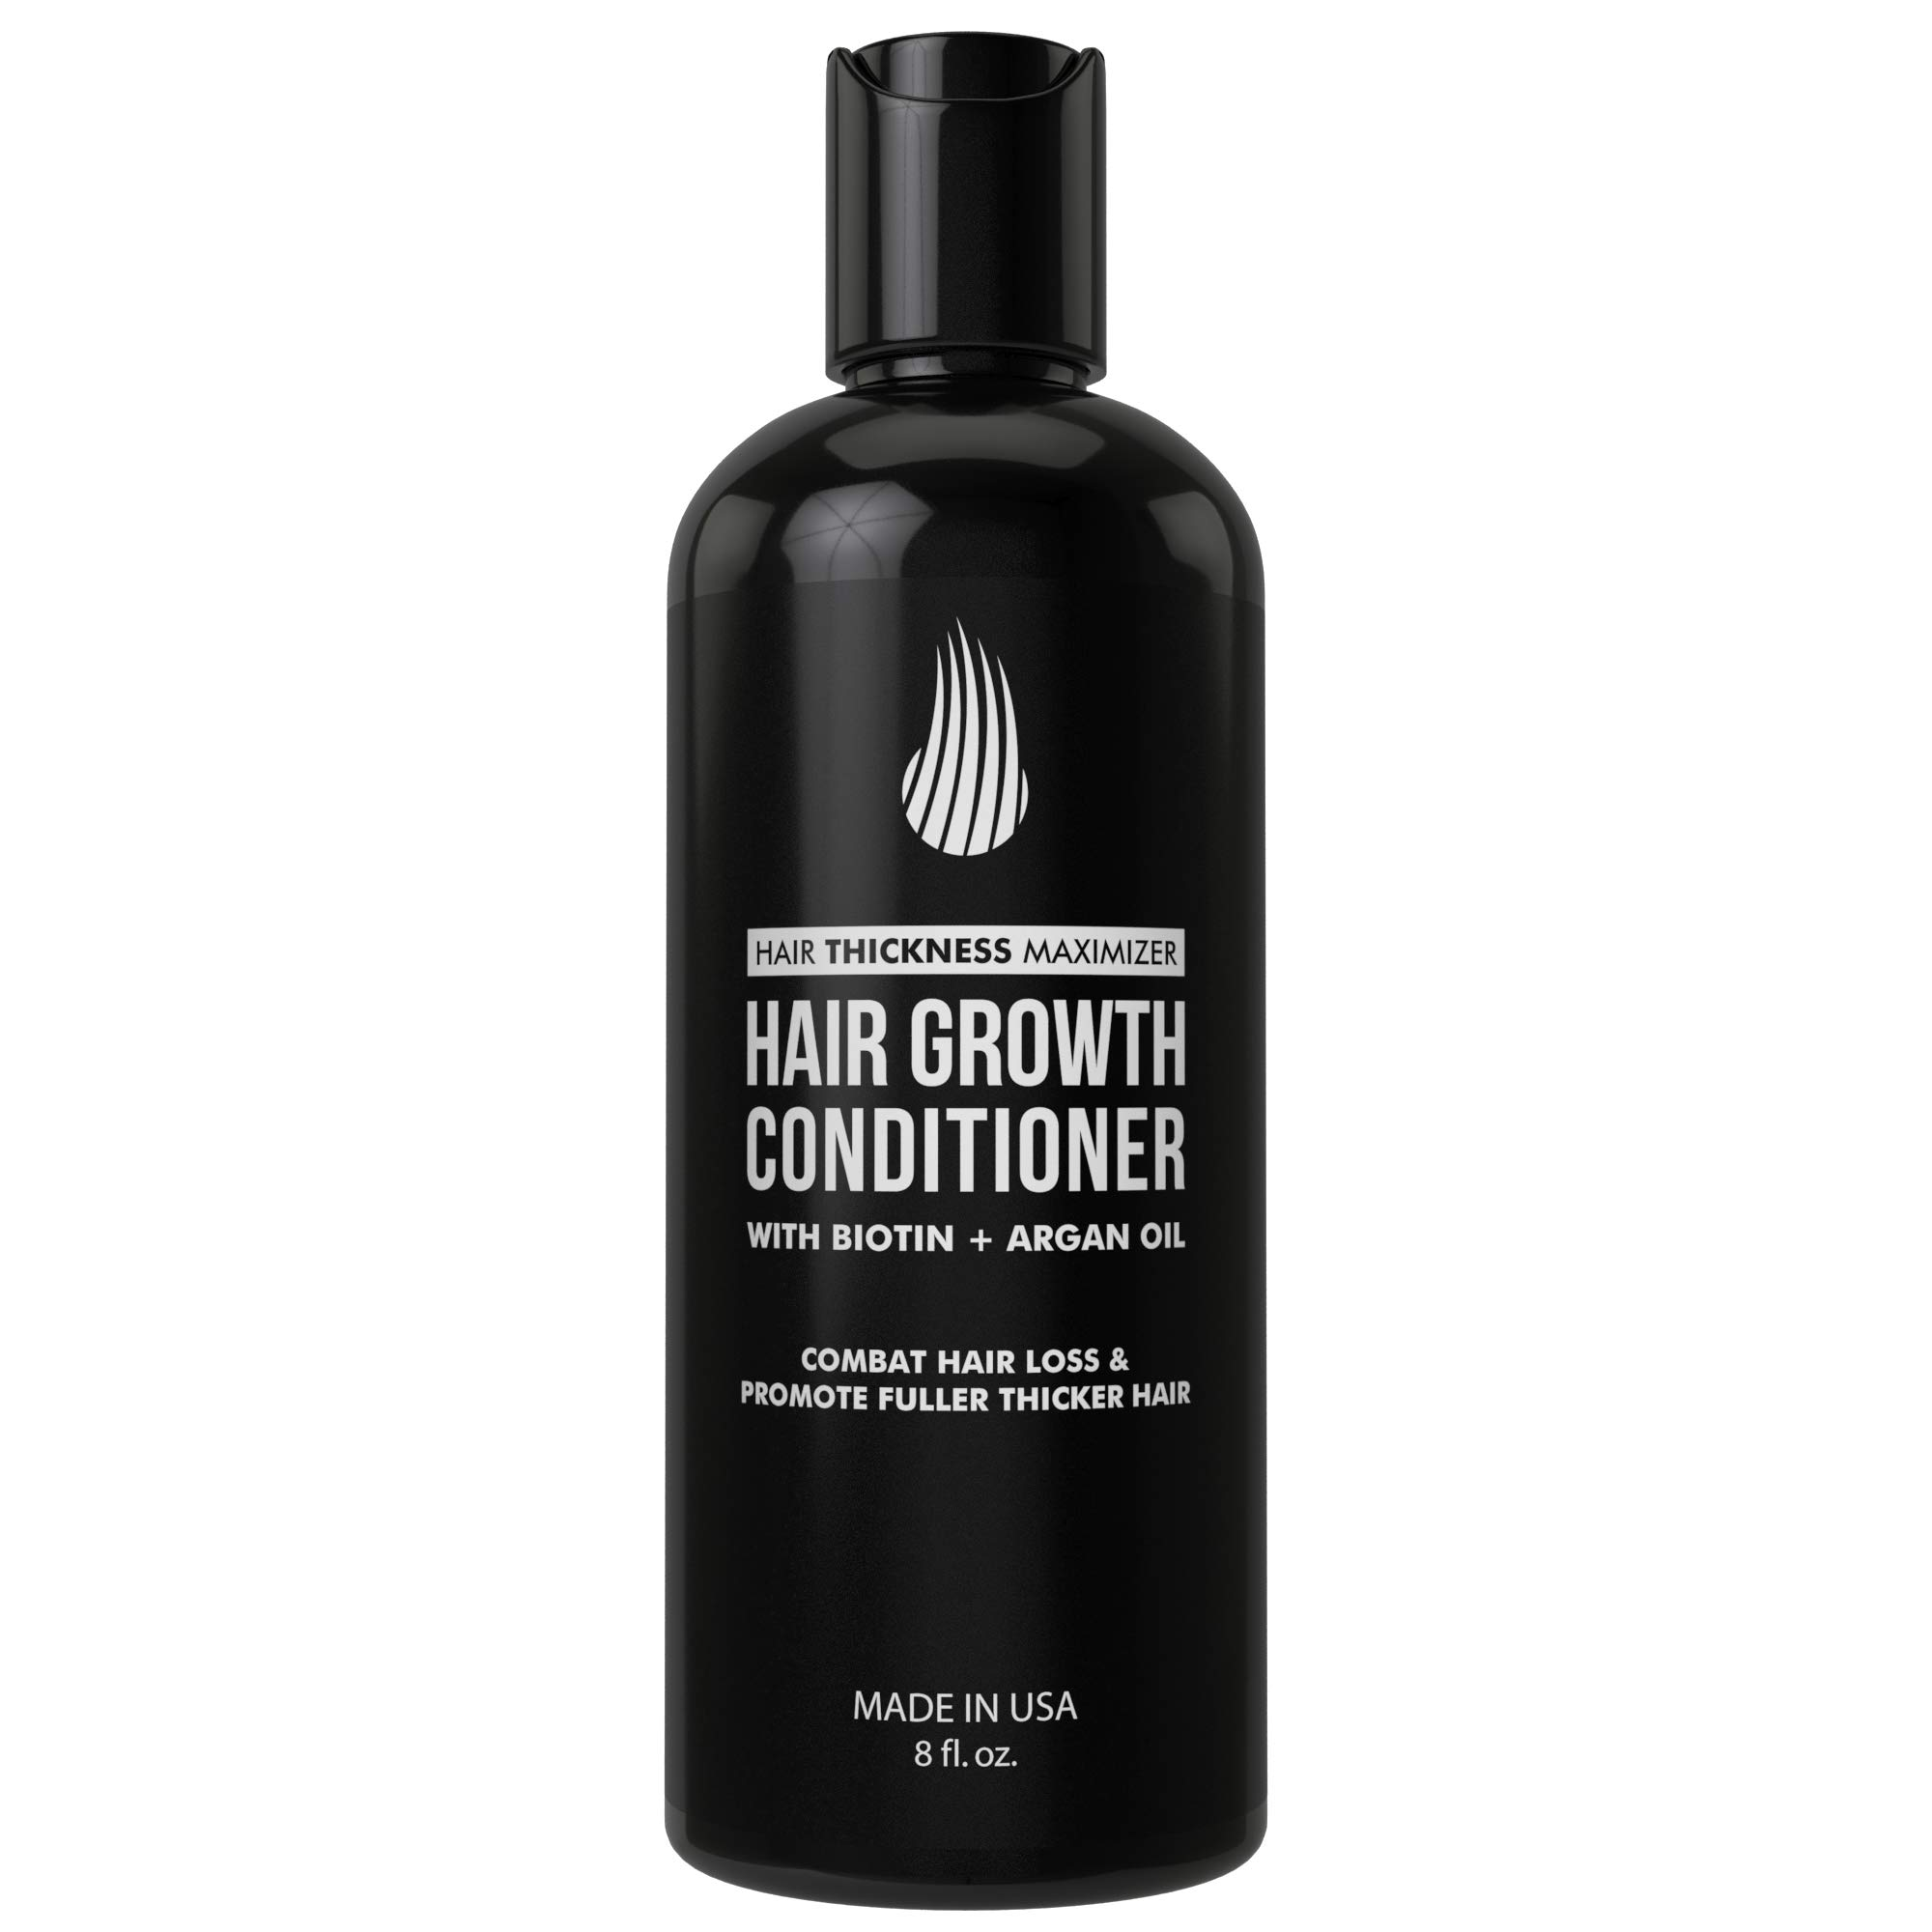 Biotin Conditioner For Thinning Hair And Hair Loss by Hair Thickness Maximizer. Hair Thickening Conditioner for Maximum Hair Growth. Best Hair Loss Treatment For Men and Women. With Argan Oil by Hair Thickness Maximizer